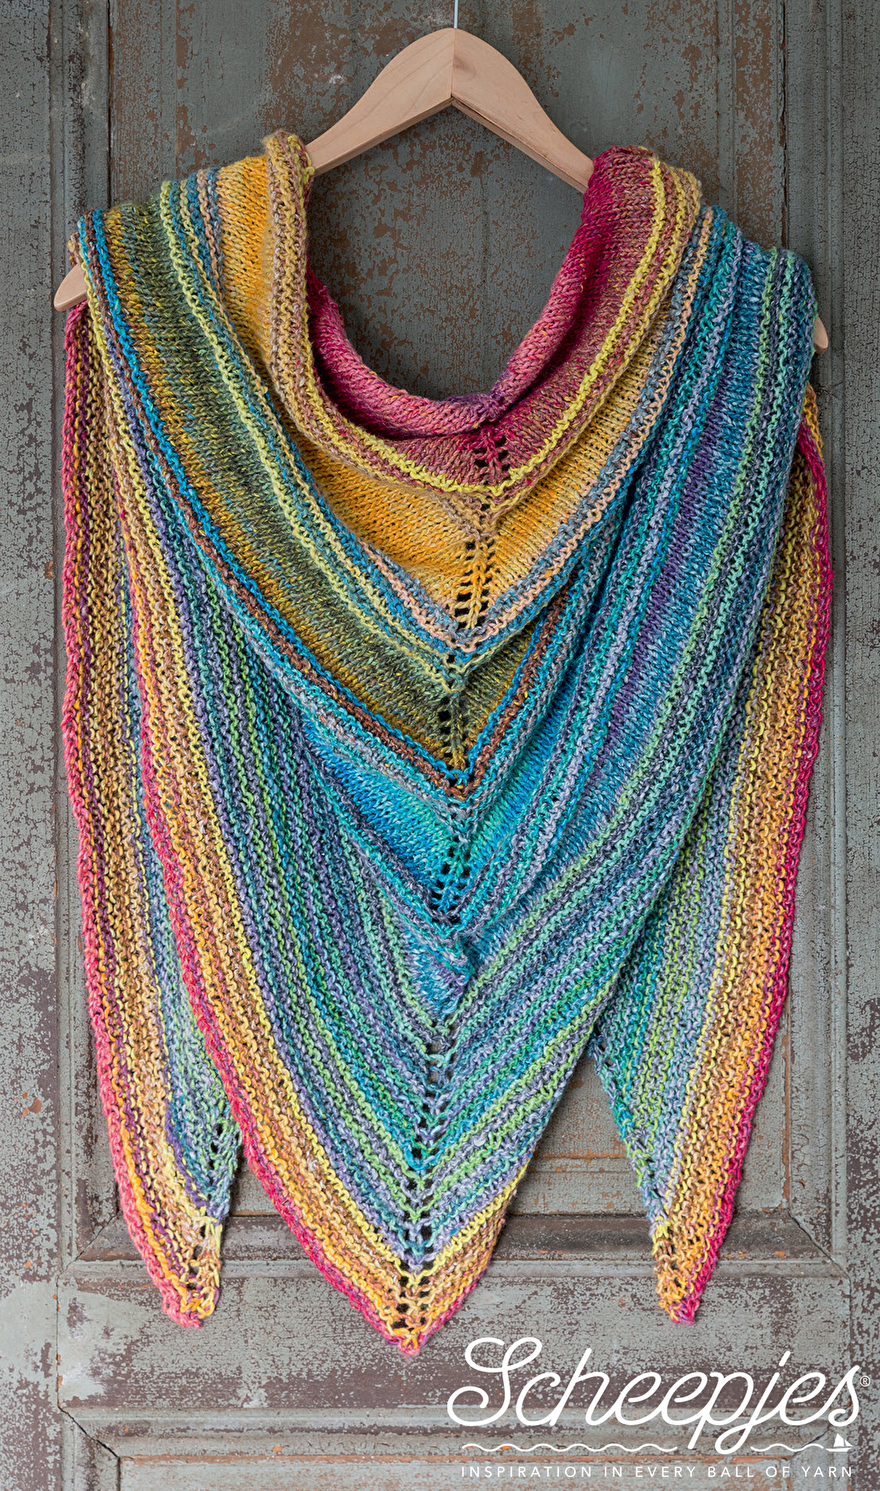 DUTCH-Shawl-of-Secrets.jpg